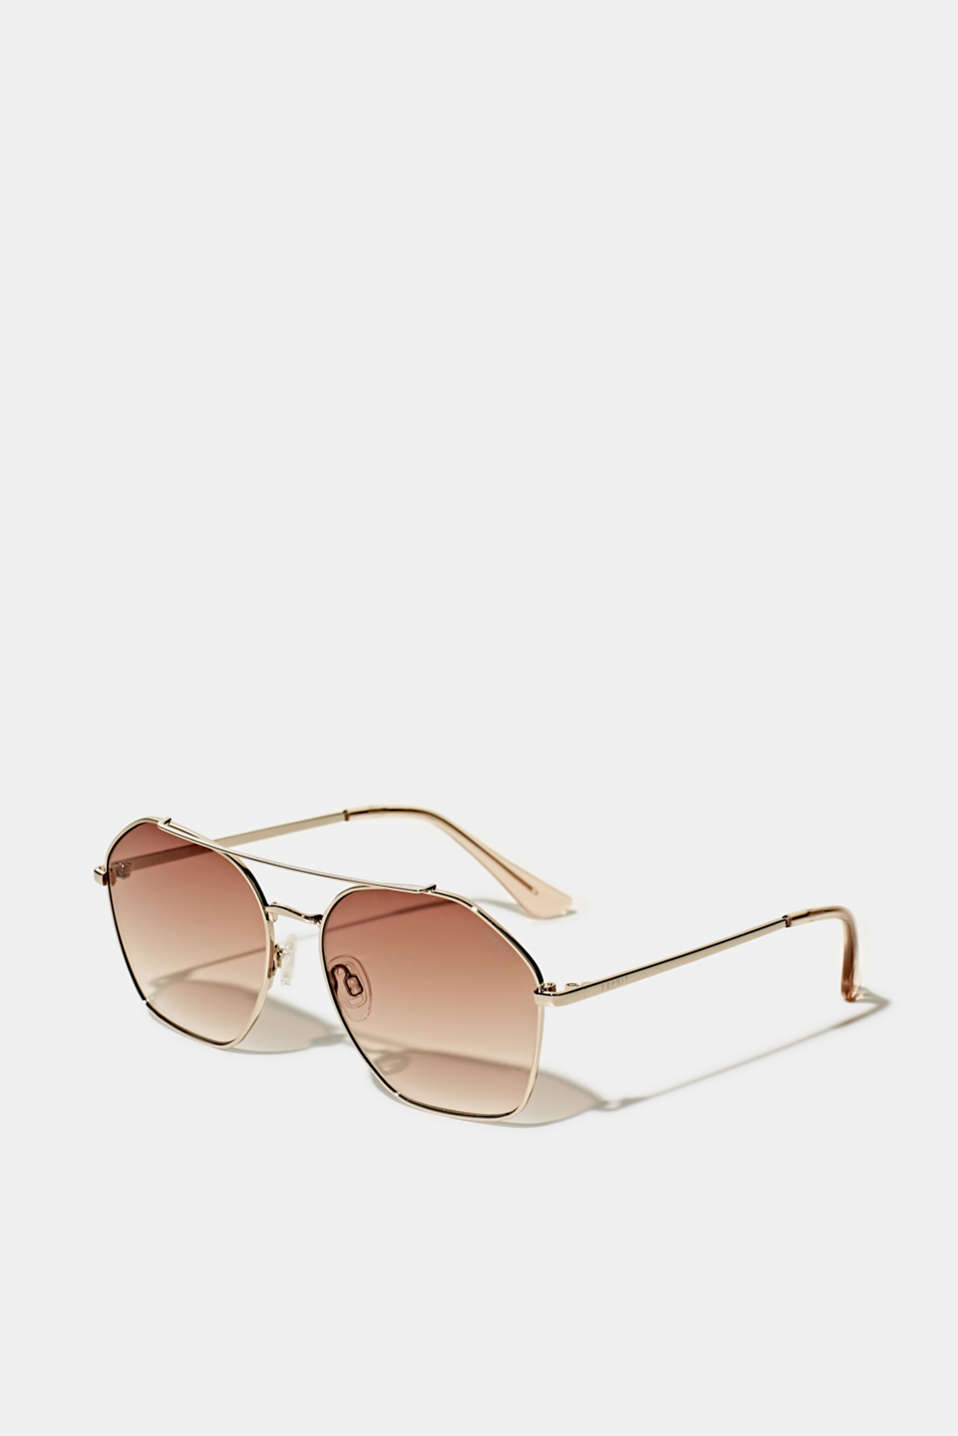 Esprit - Sunglasses with metal frame